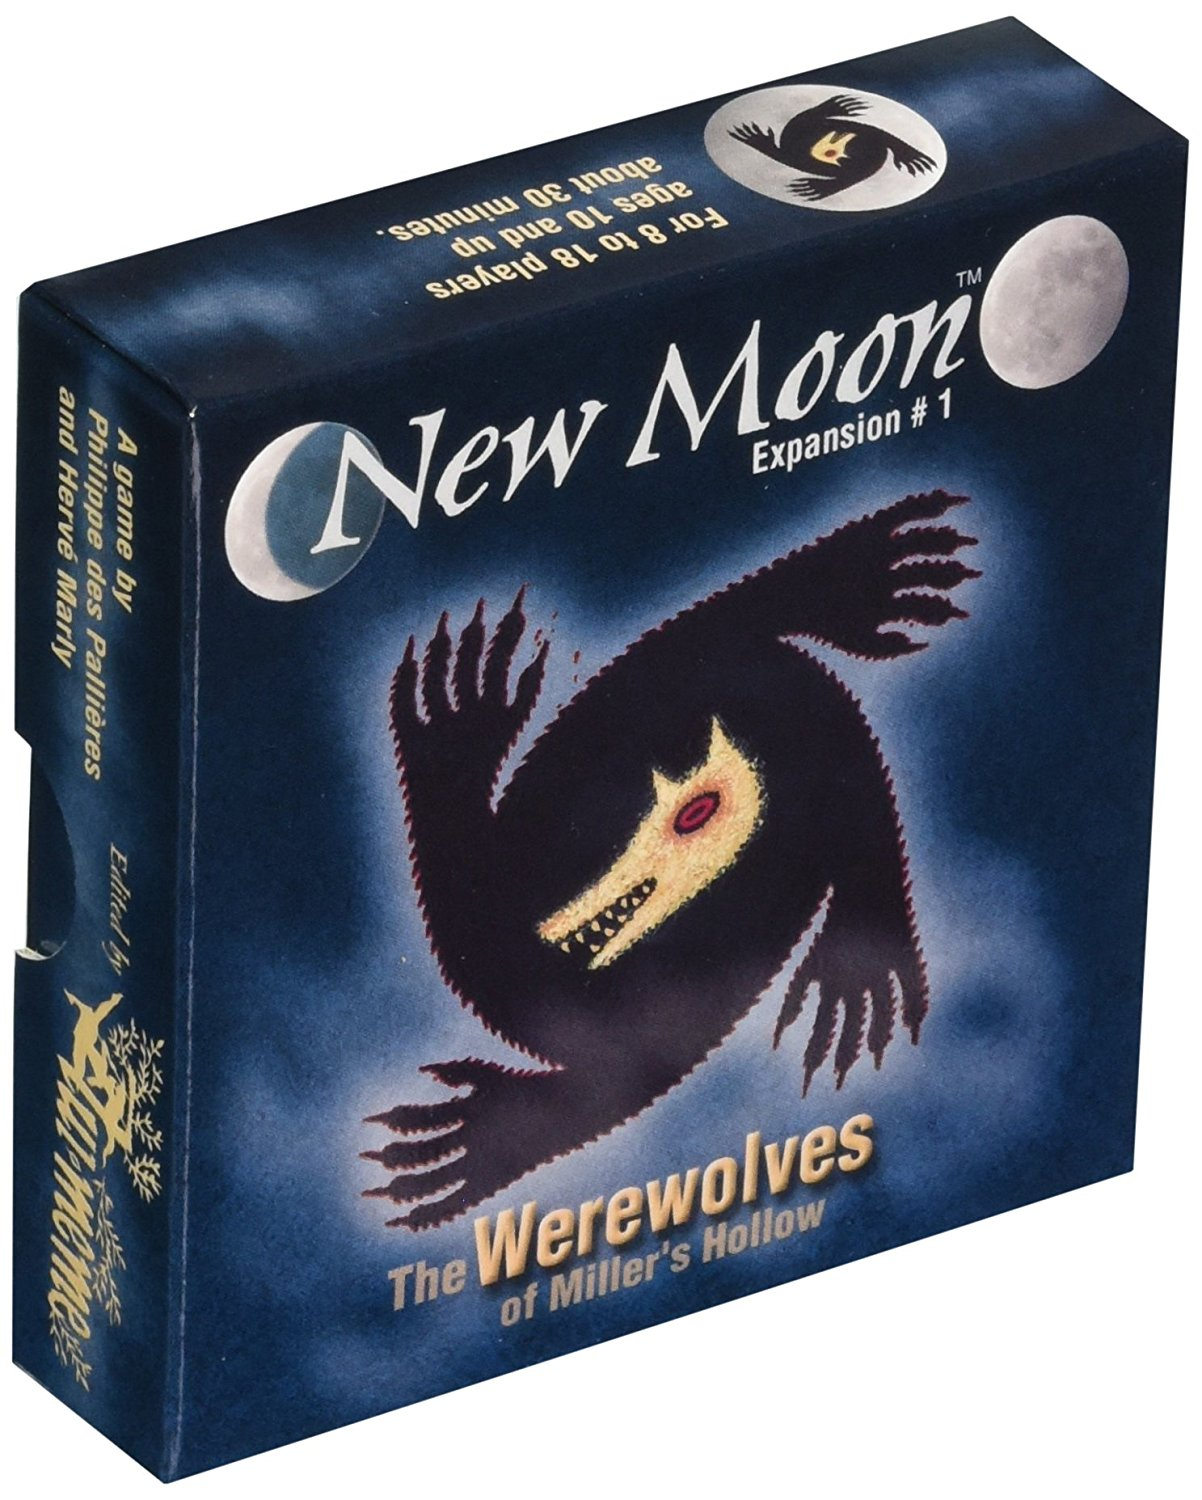 Werewolves New Moon